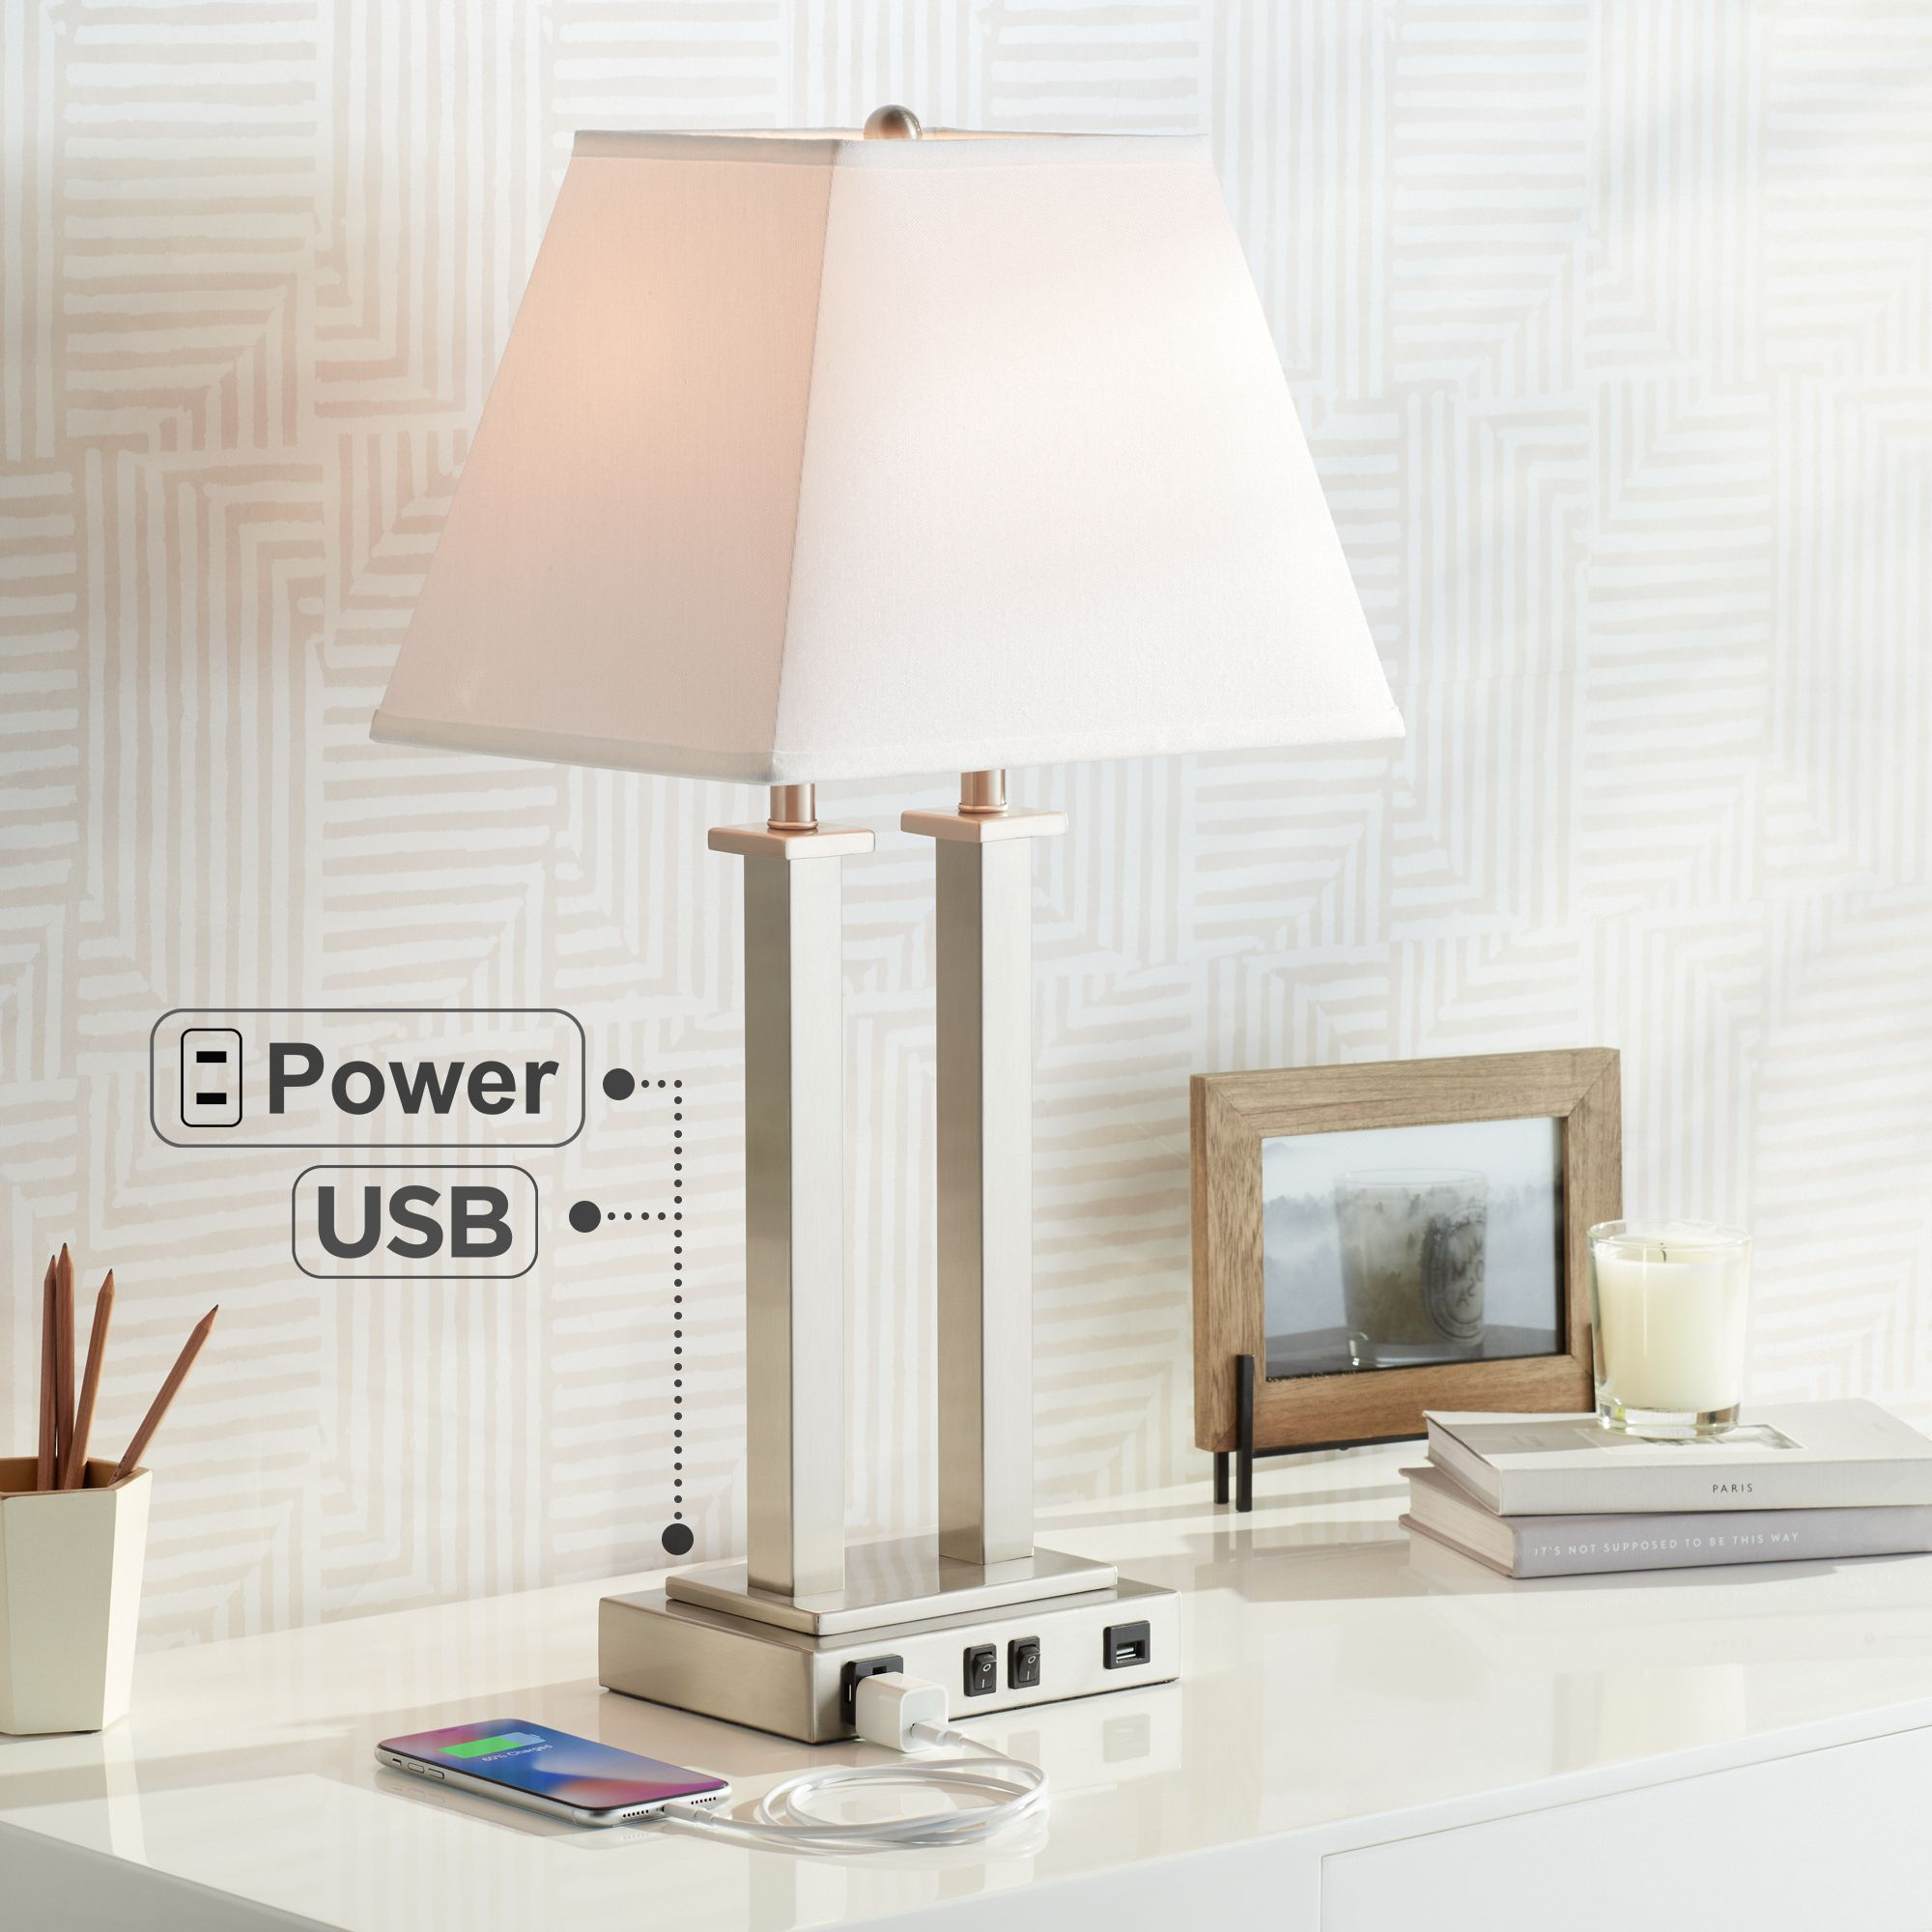 Perfect Possini Euro Amity Desk Lamp With USB Port And Outlet